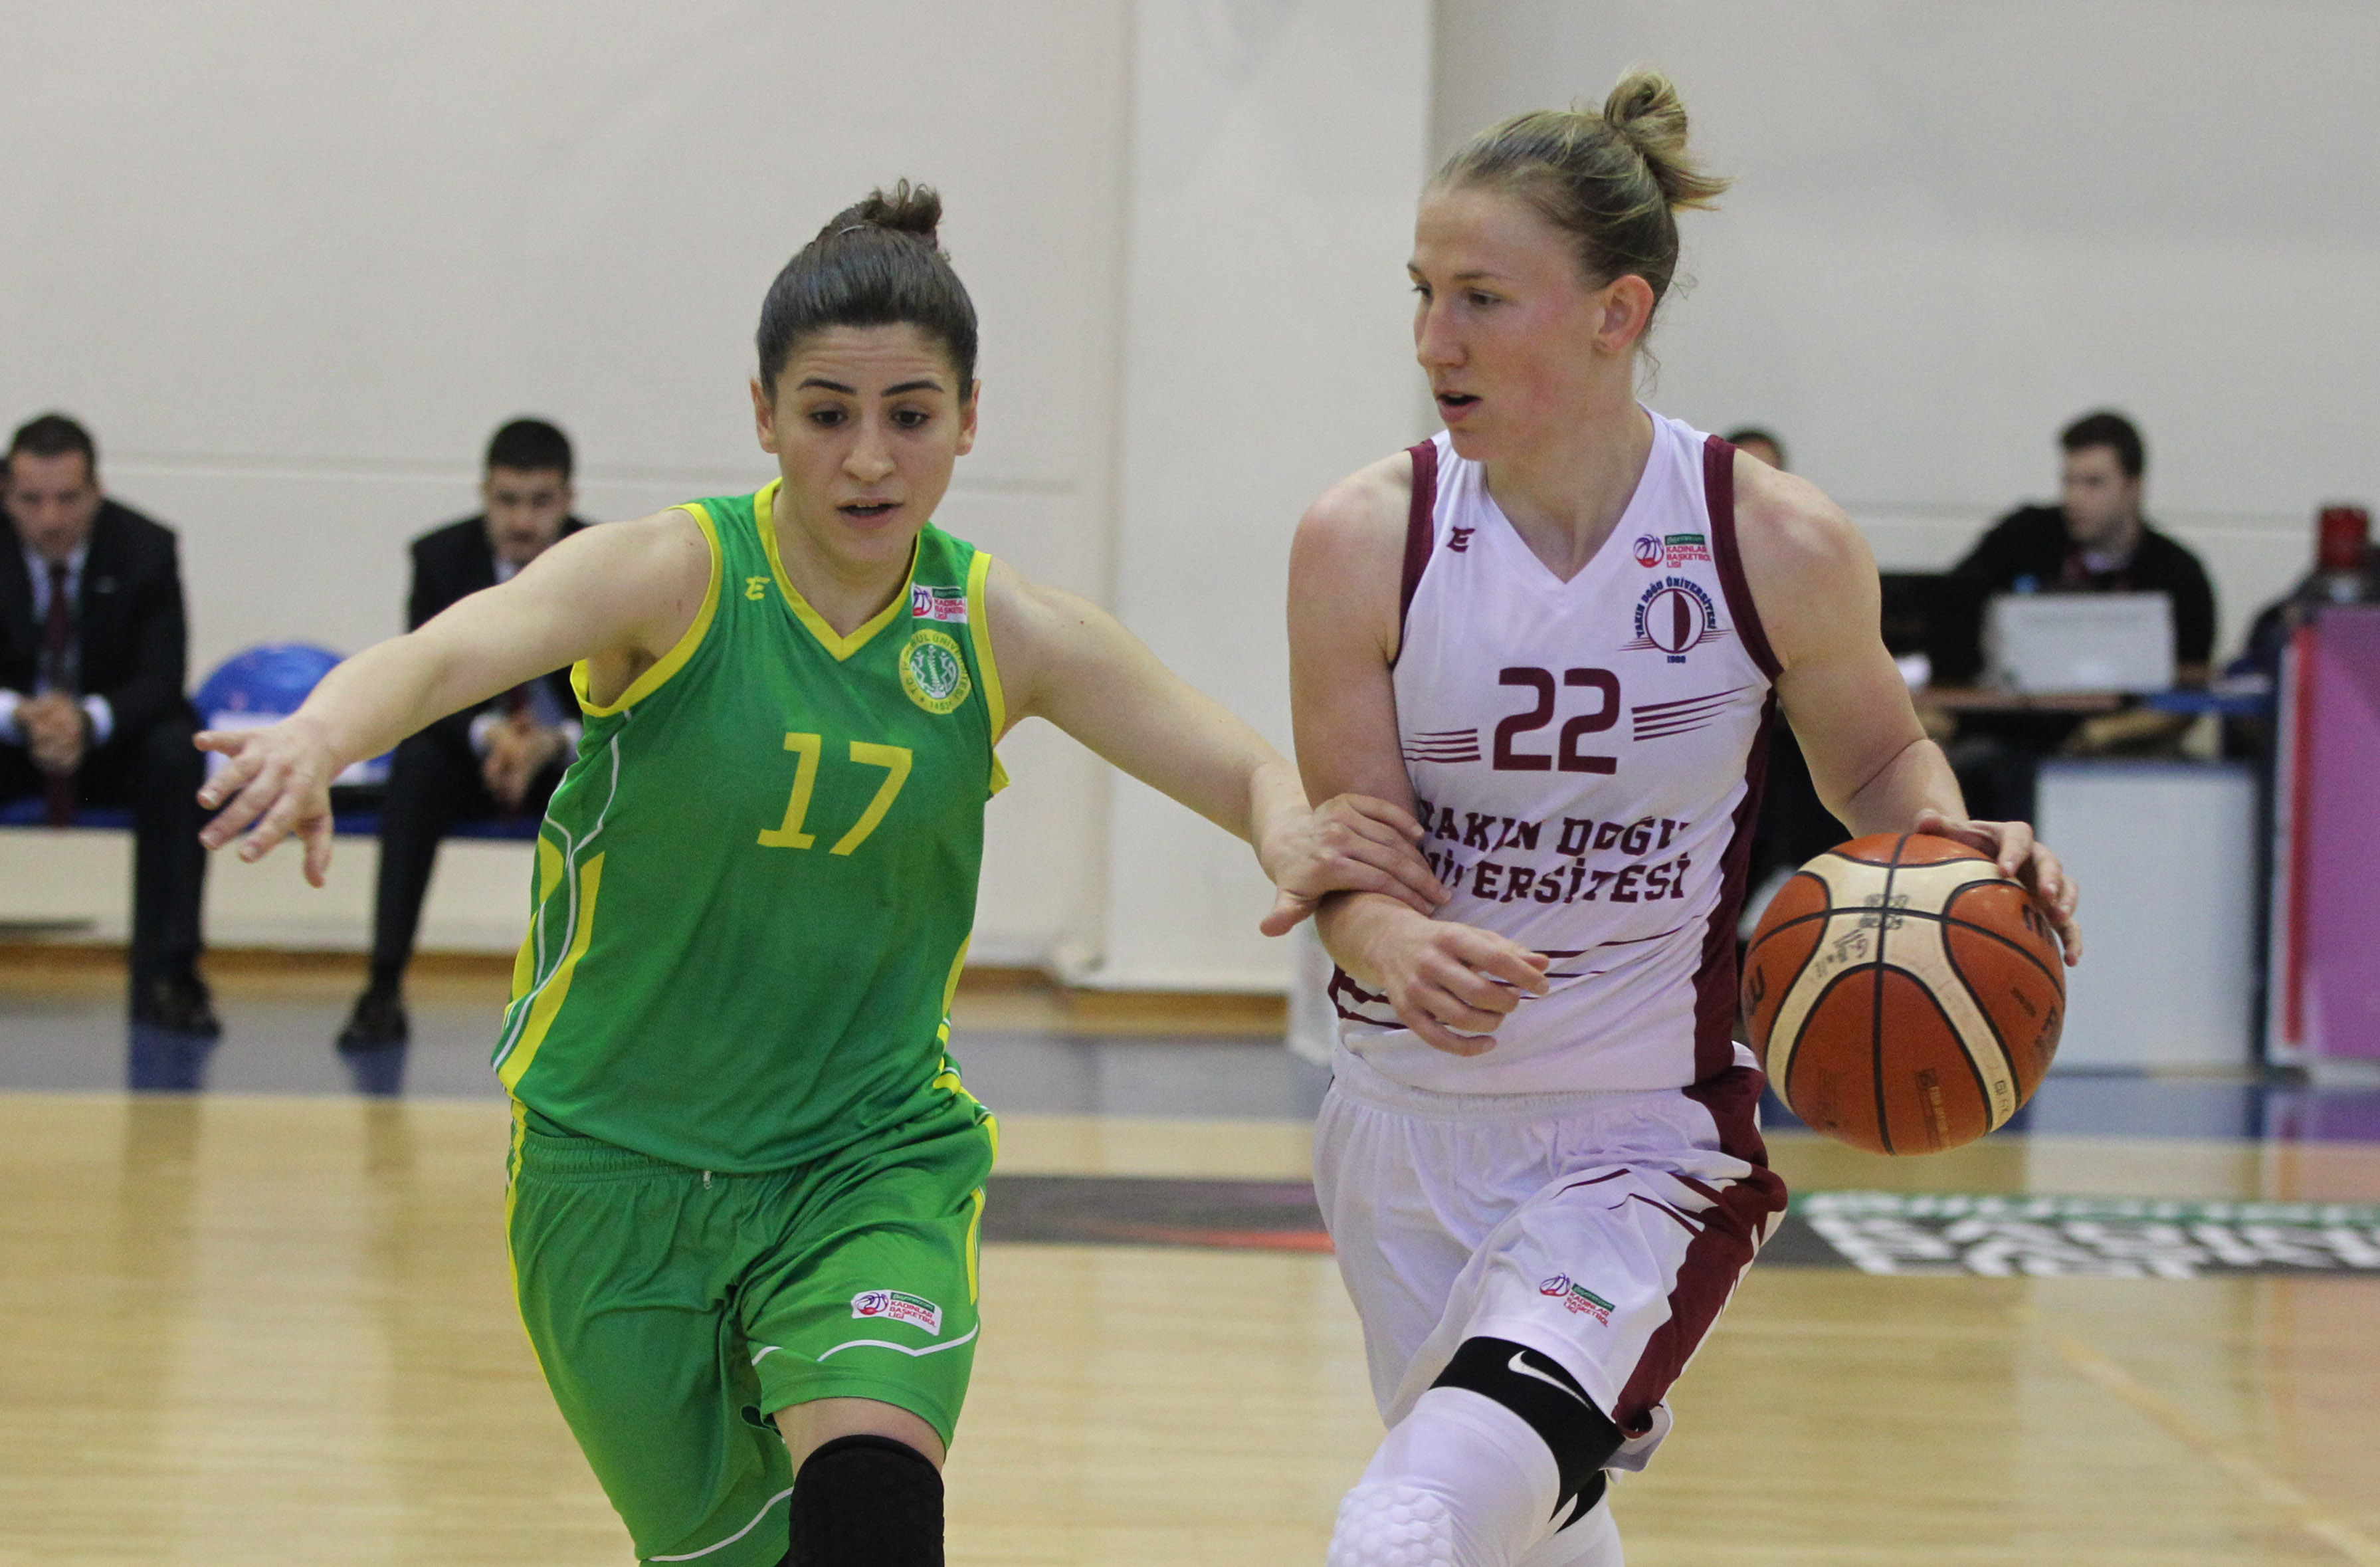 Play-Off time for hoop … Near East University – Istanbul University